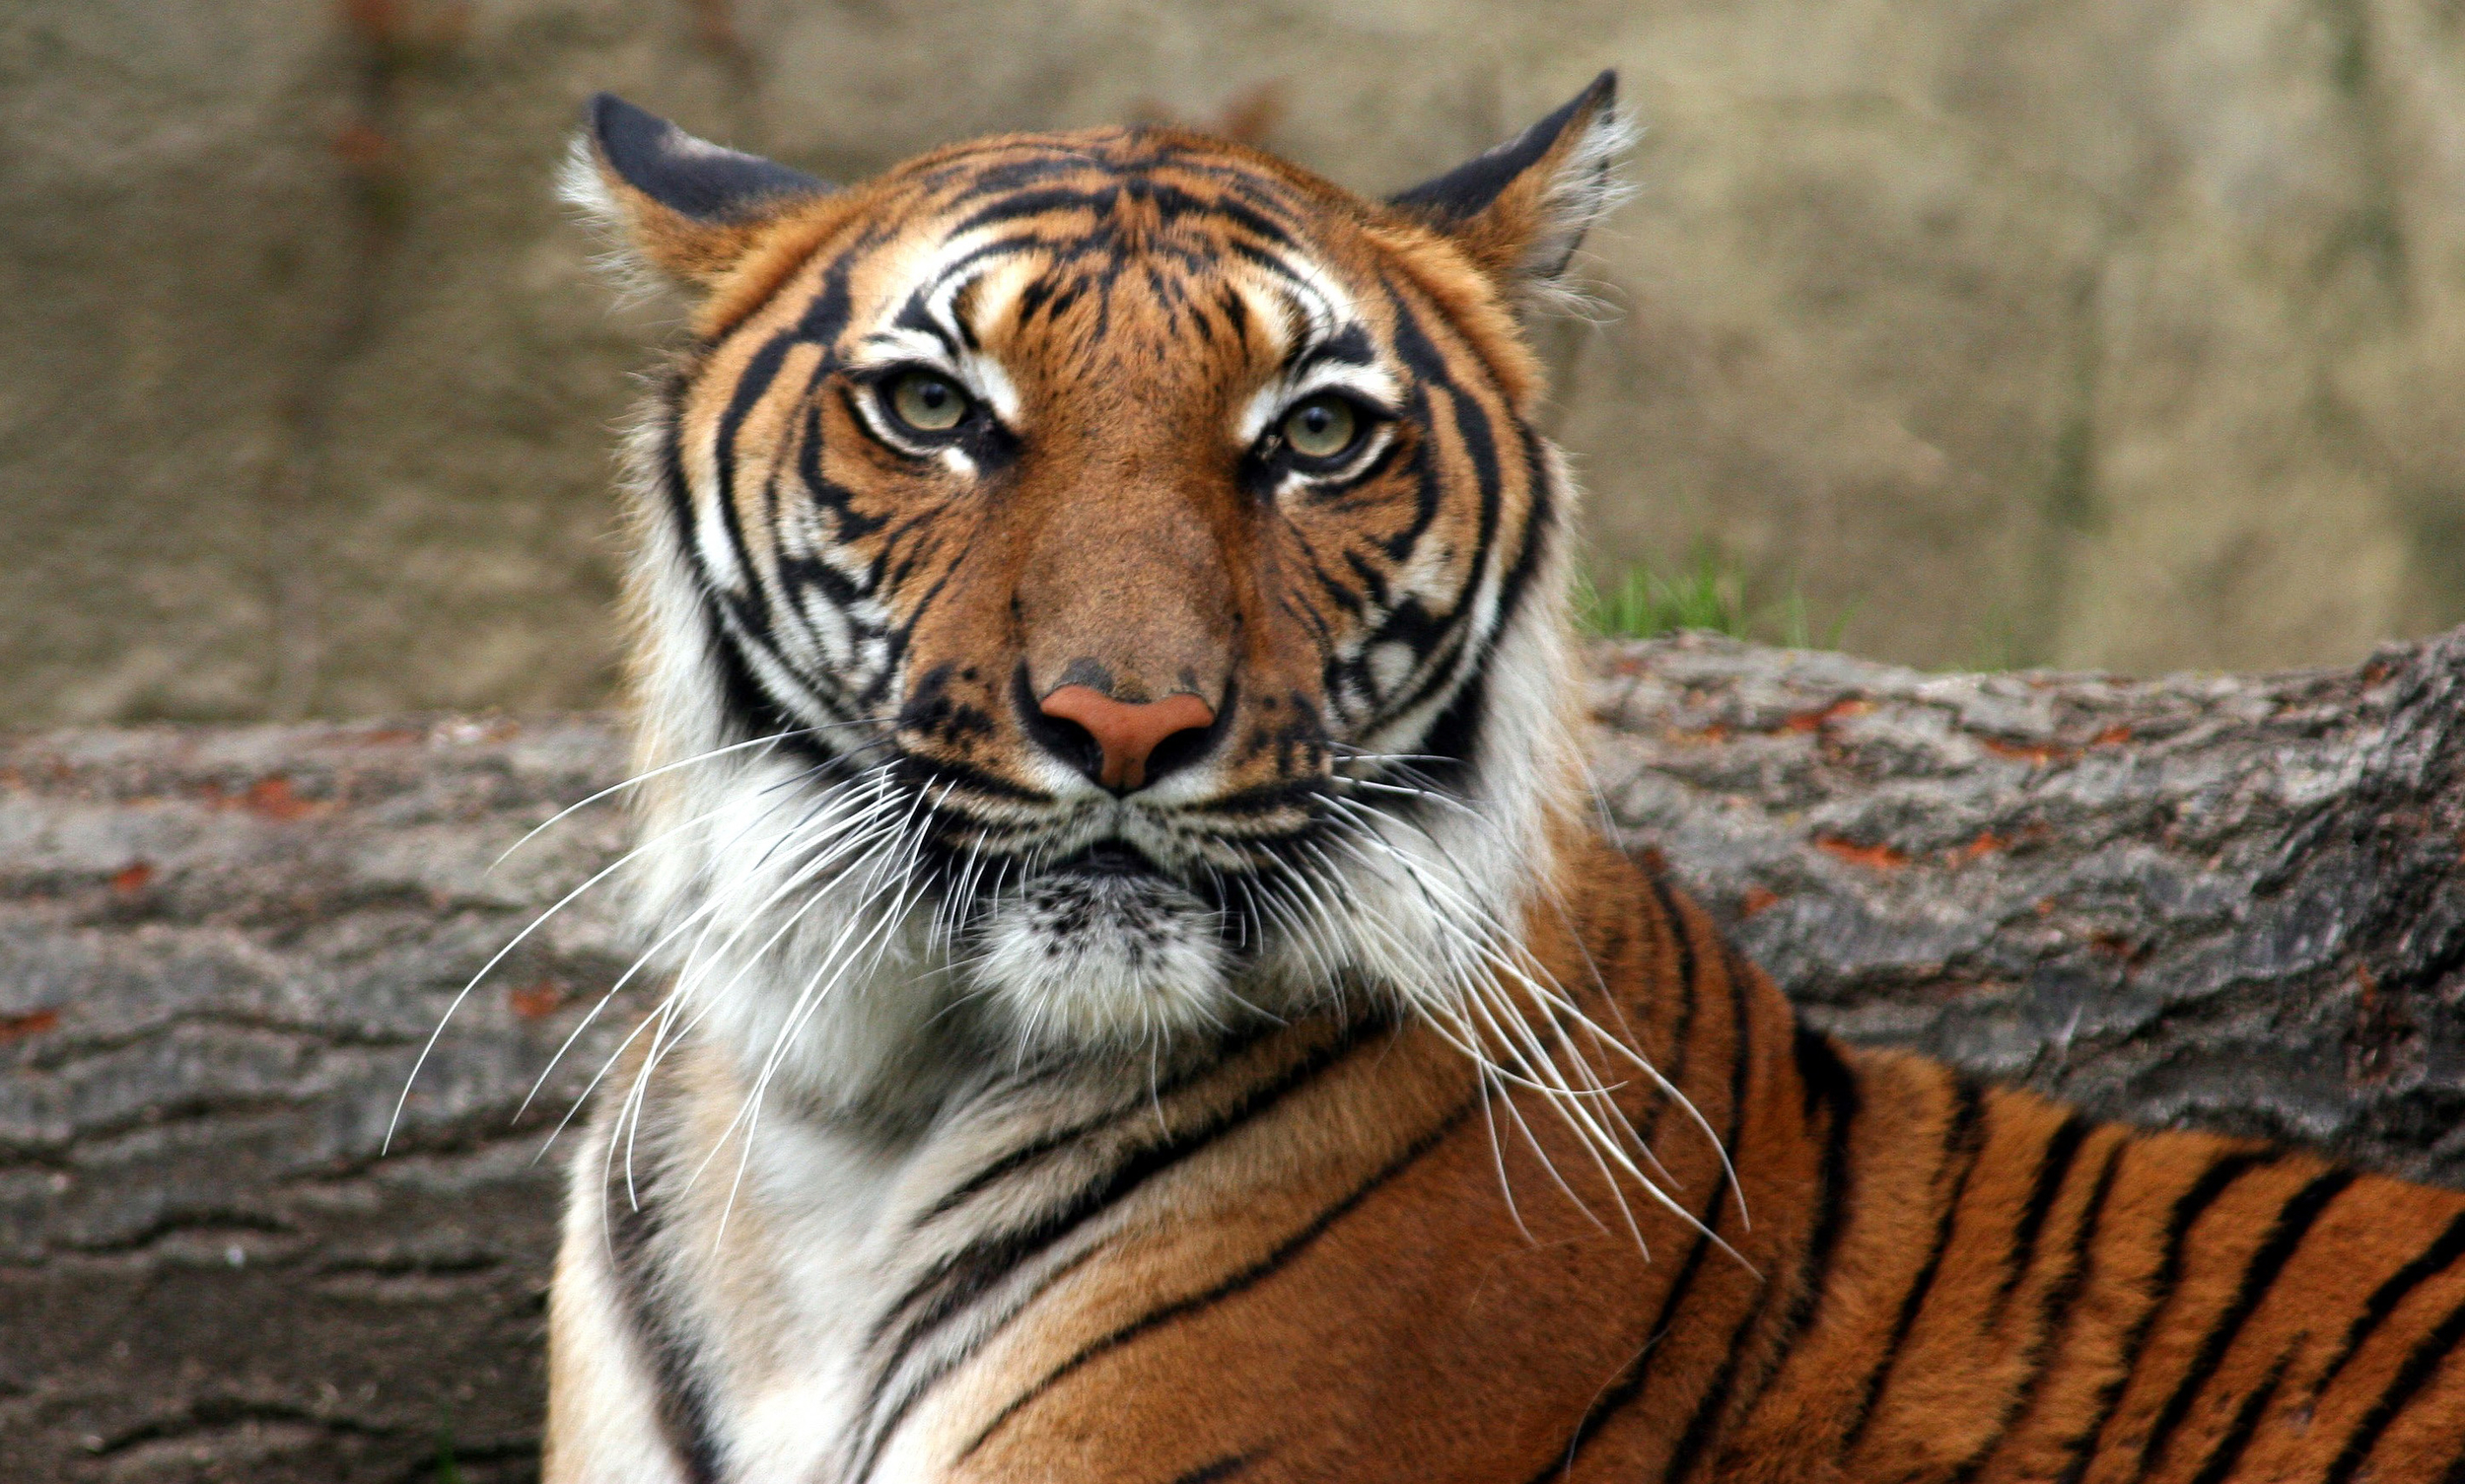 Indochinese Tiger, courtesy of Connie Lemperle